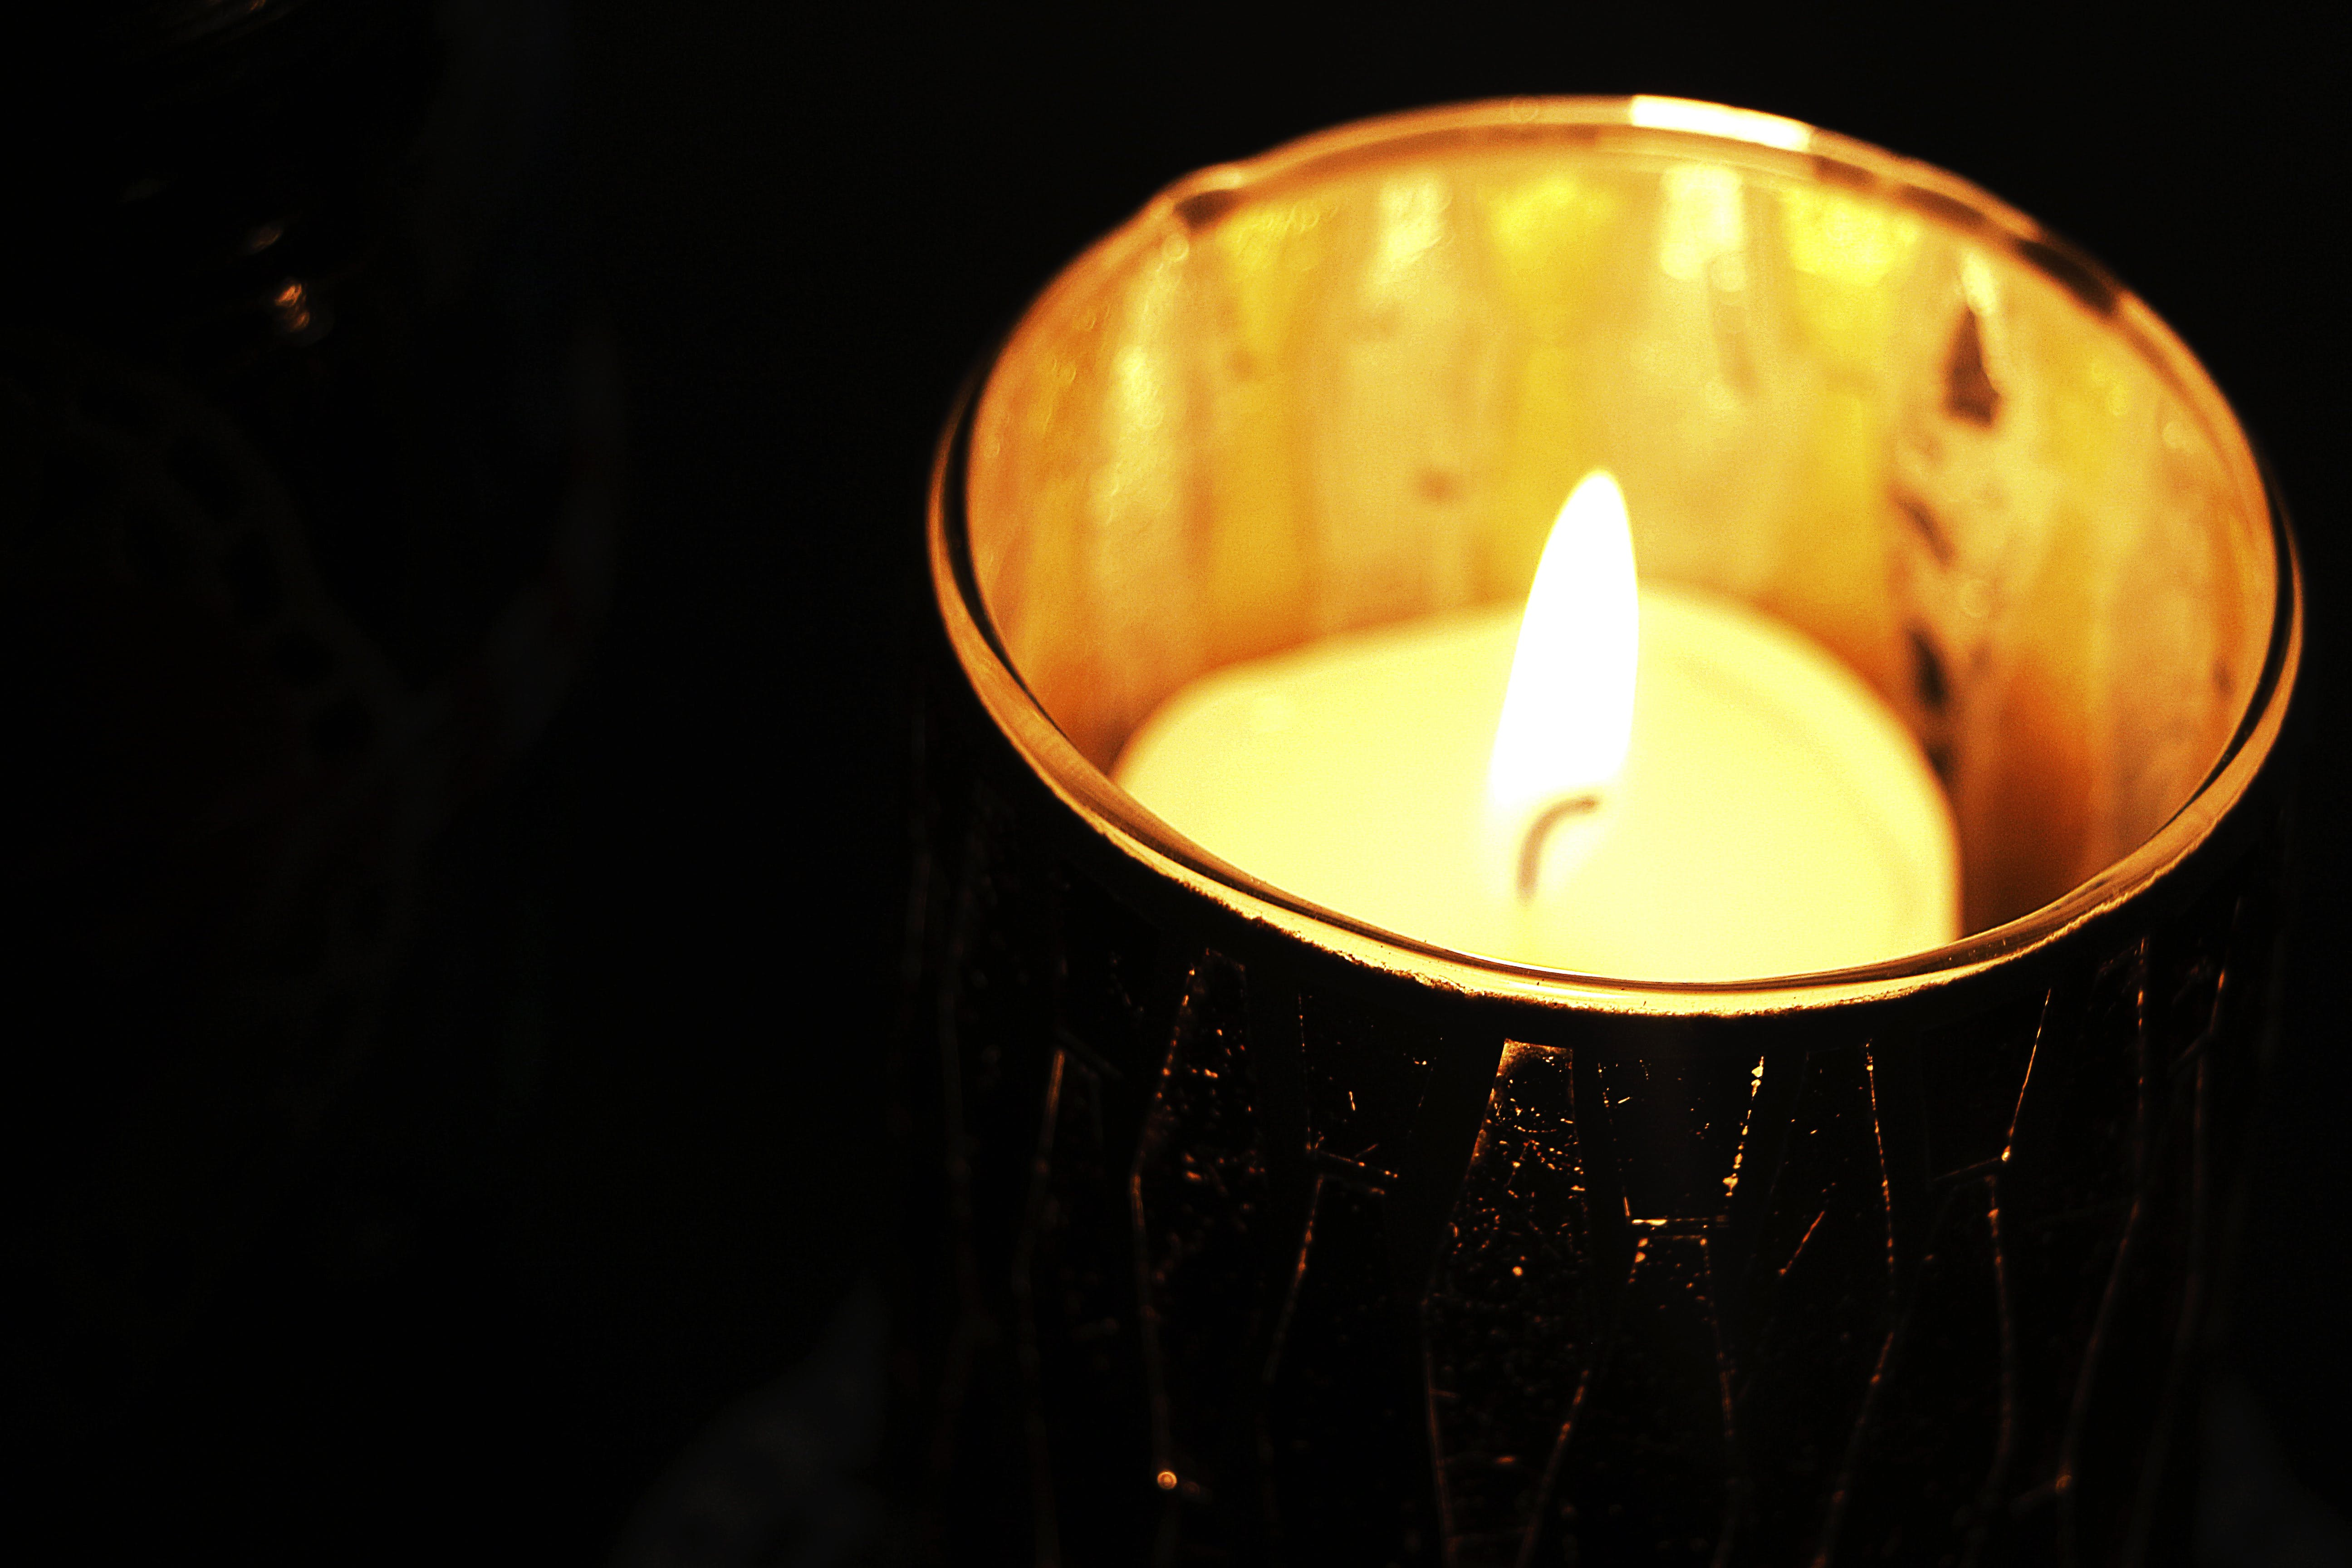 Flame on White Tealight Candle